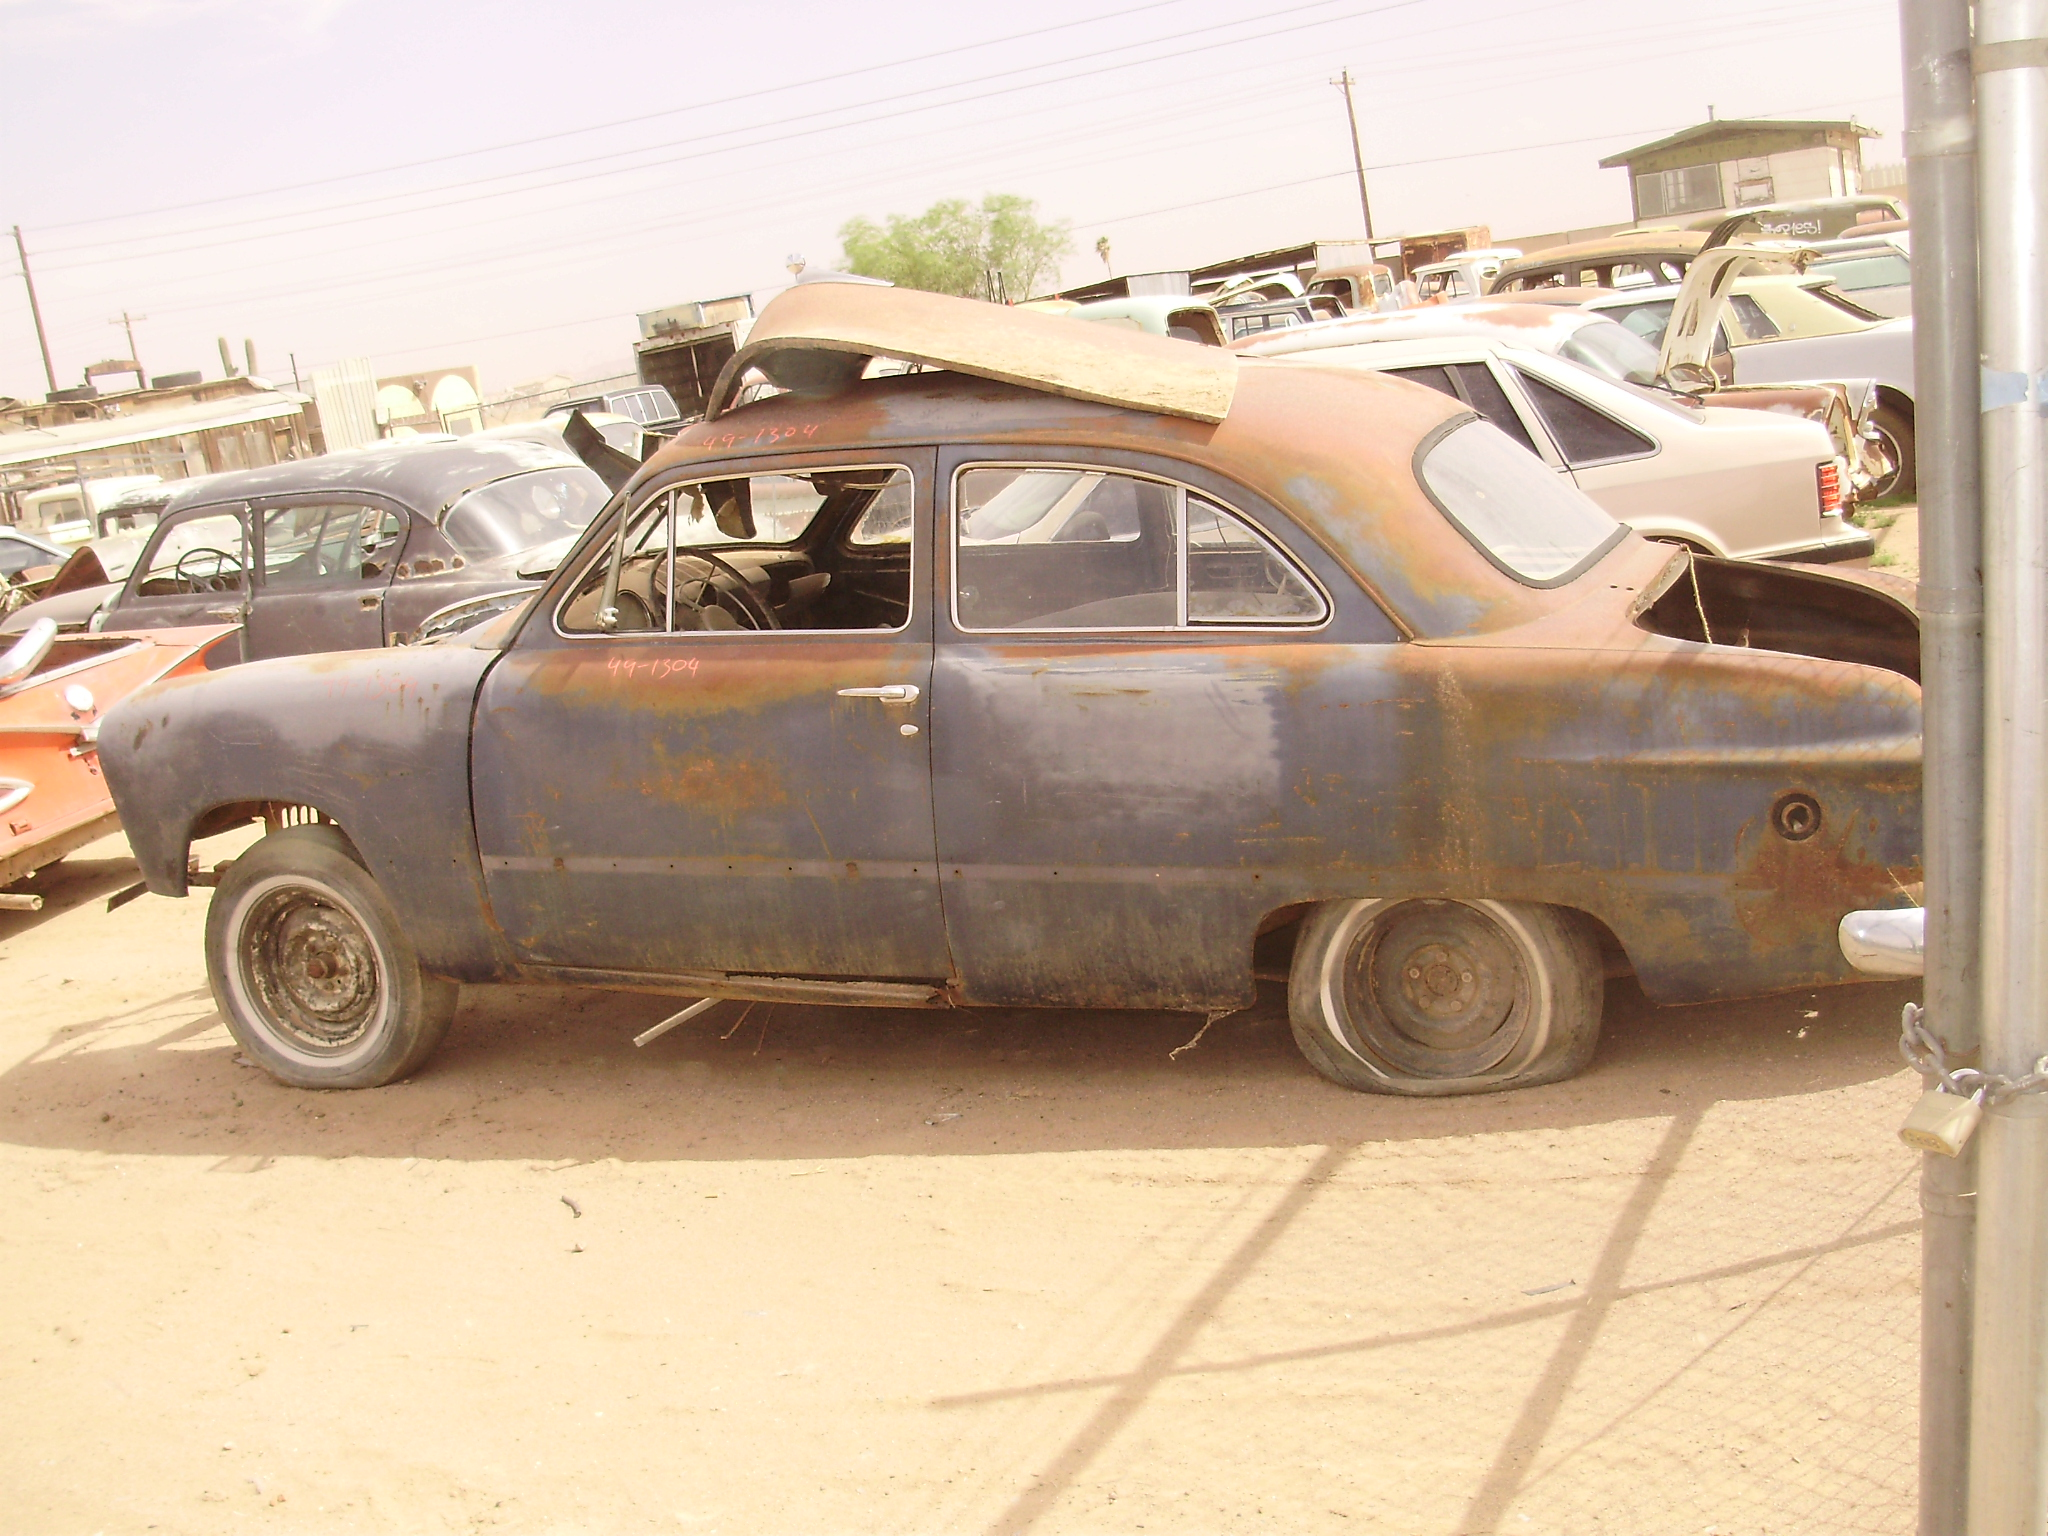 1949 Ford Ford Car (#49FO1309C) | Desert Valley Auto Parts - photo#30